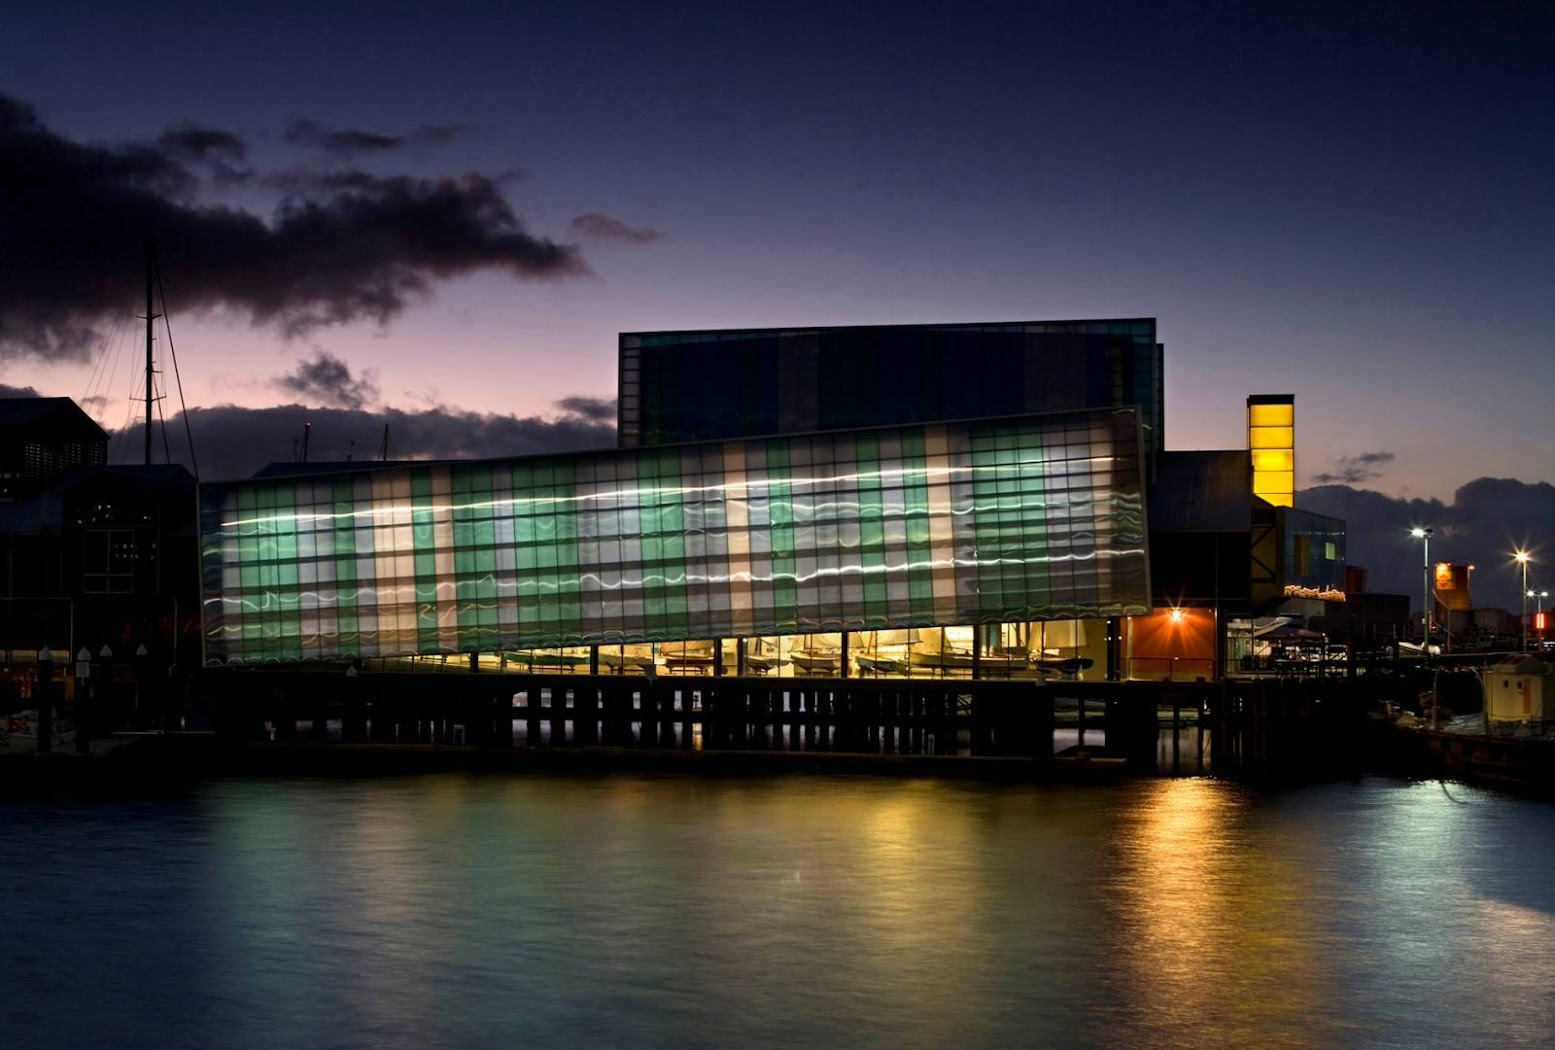 Auckland, Nuova Zelanda: [VOYAGER MARITIME MUSEUM BY BOSSLEY ARCHITECTS]